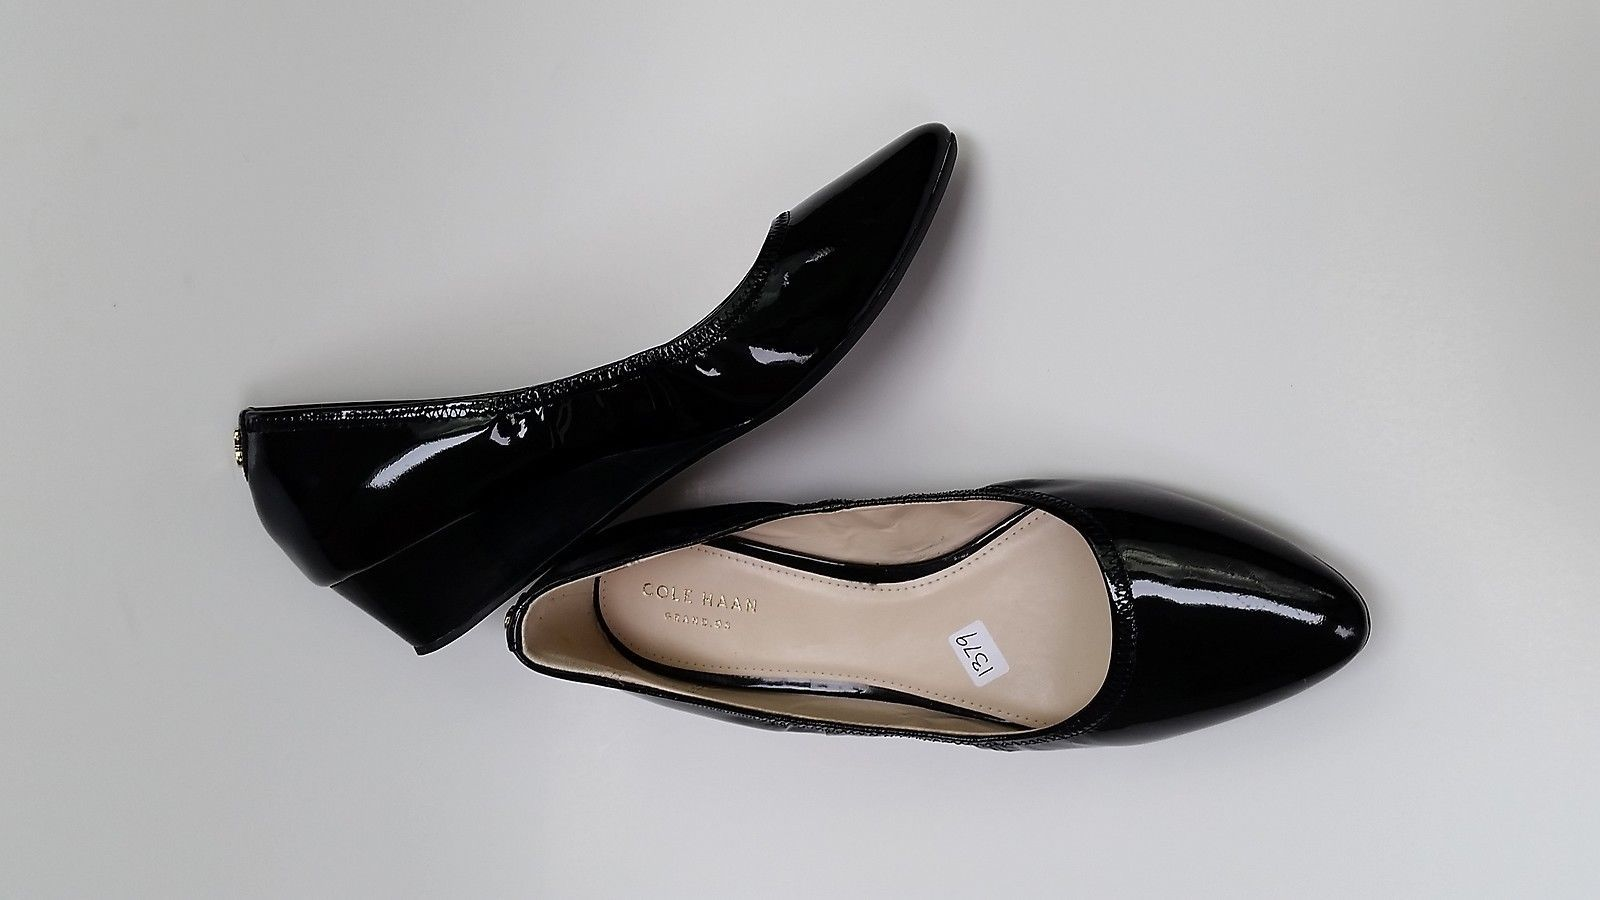 222c034d136 Cole Haan Shoes Heels Black Patent Leather Wedge Womens Size 7.5 B